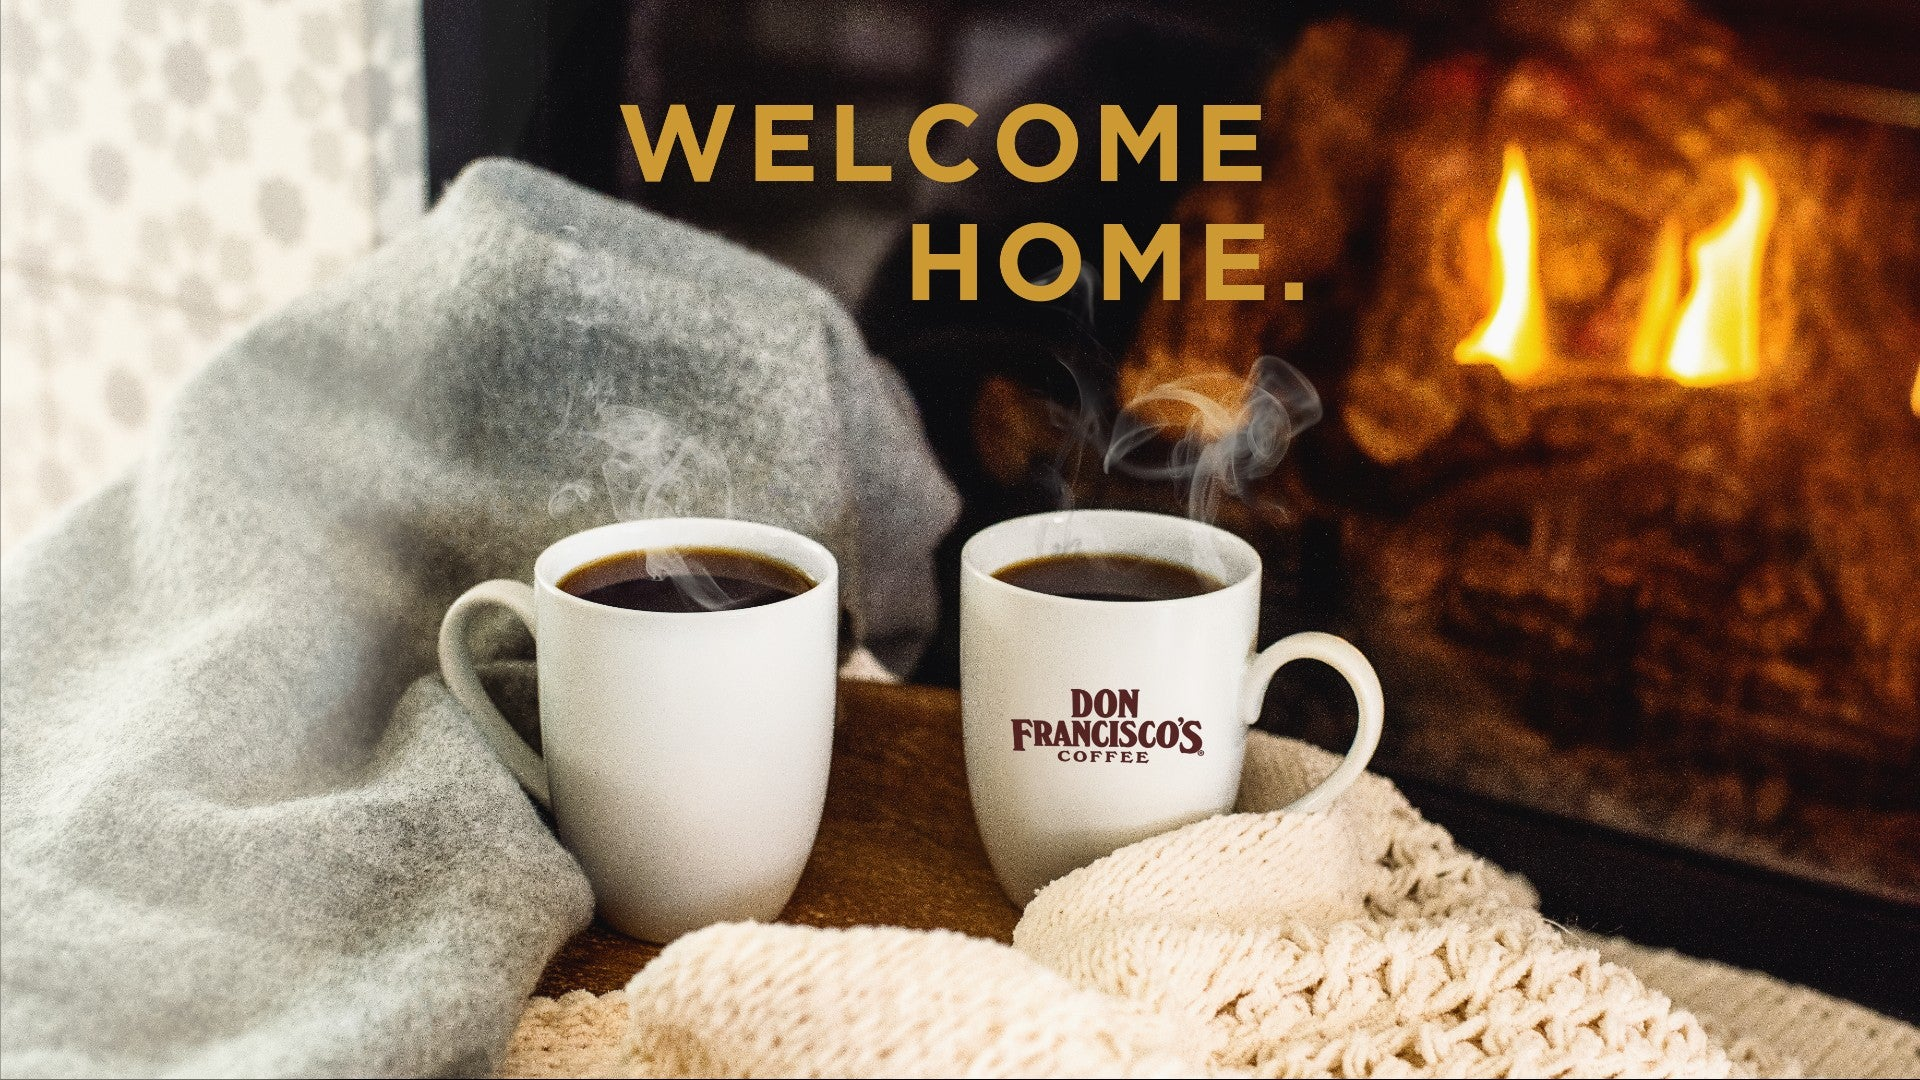 Don Francisco's Coffee Welcome Home Billboard